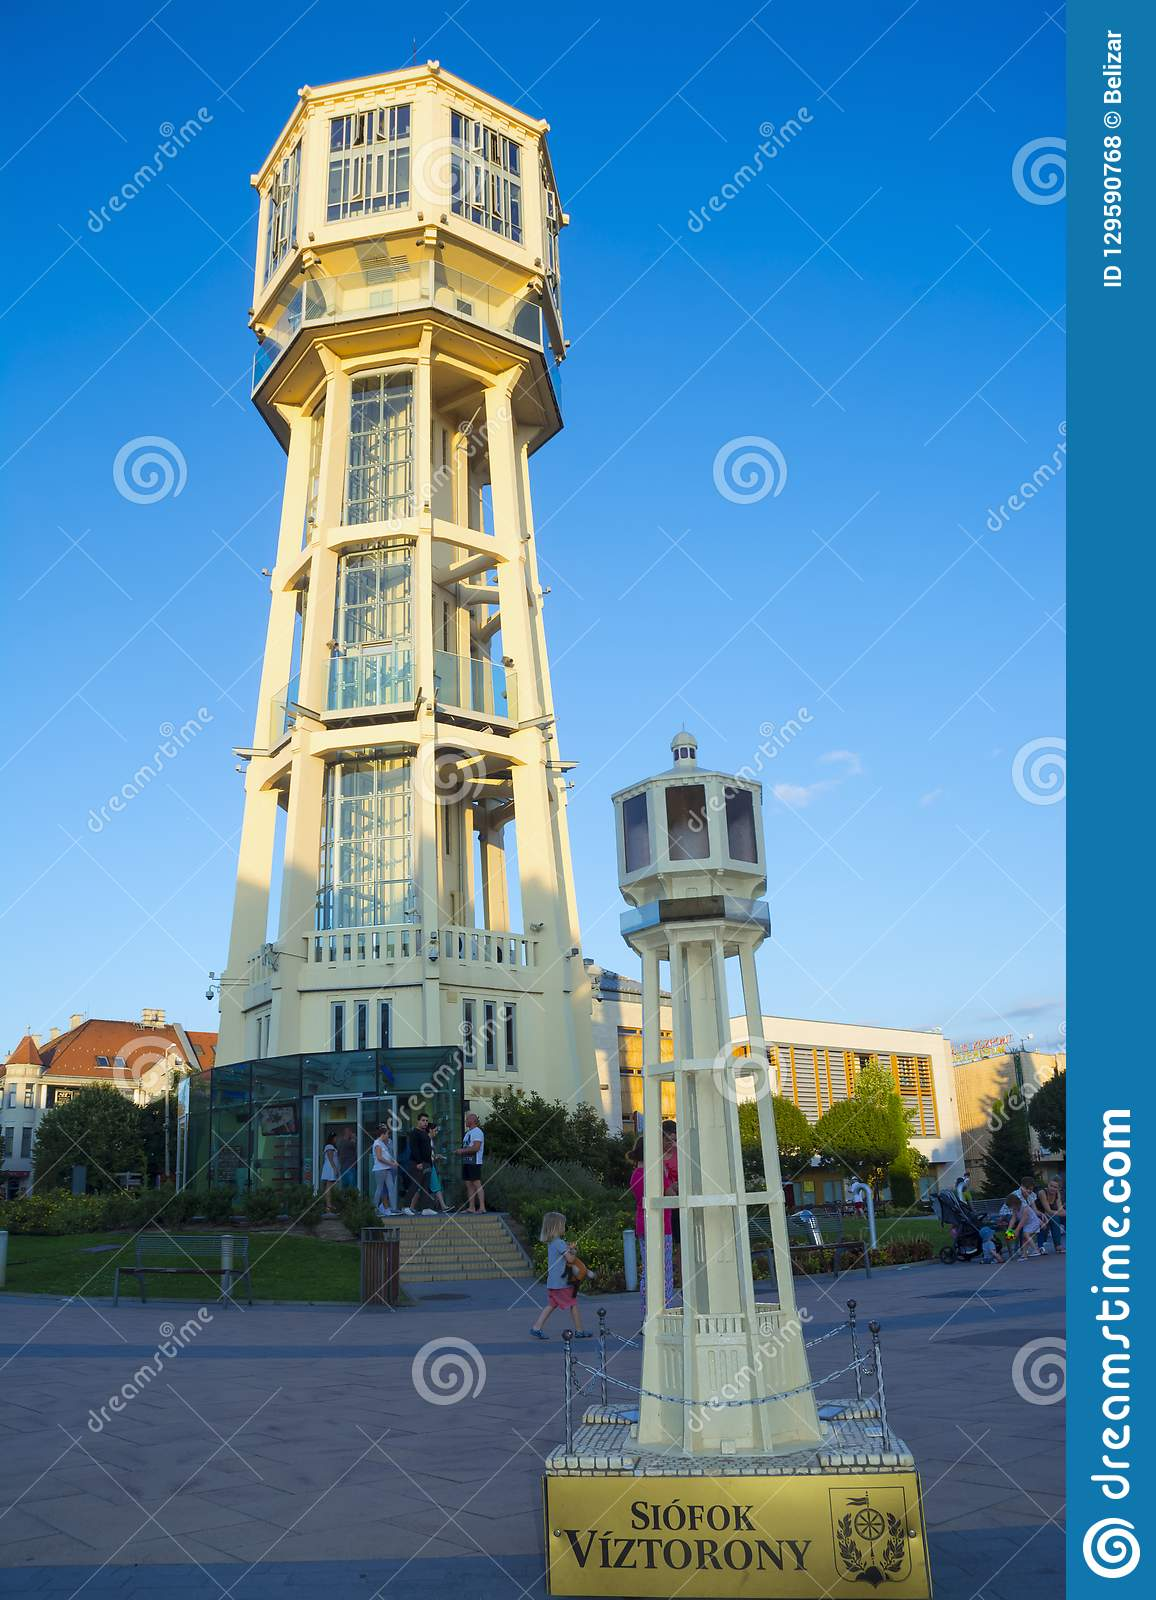 Water tower in Siofok